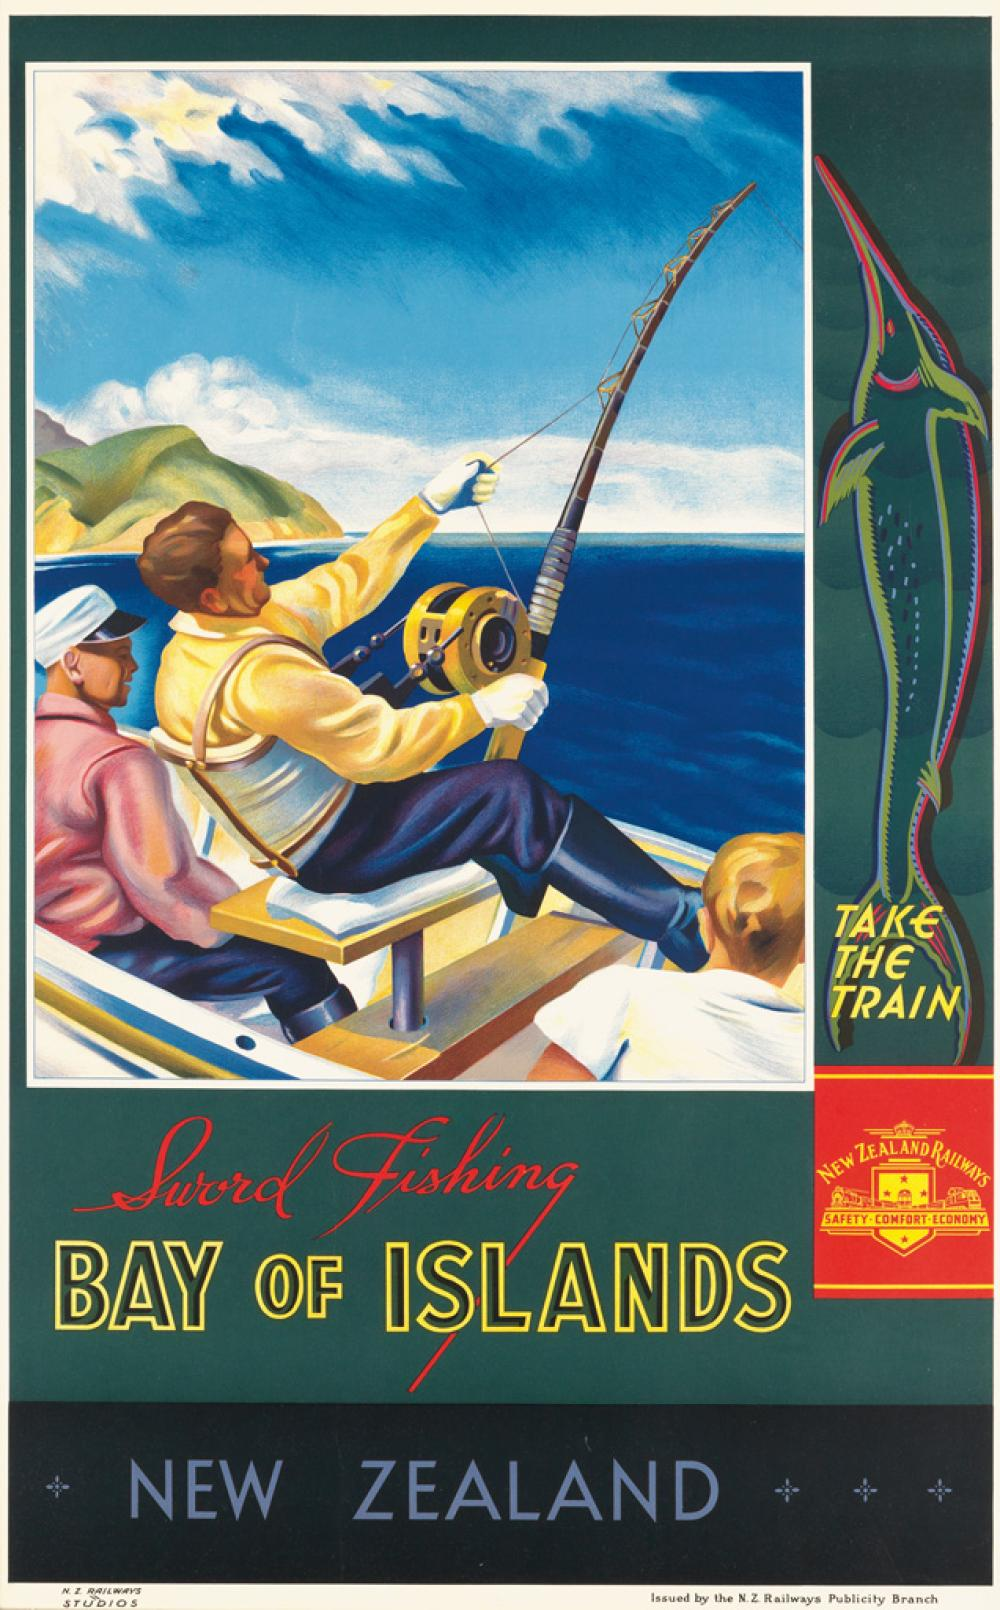 JOHN HOLMWOOD (1910-1987). NEW ZEALAND / BAY OF ISLANDS / SWORD FISHING. Circa 1930. 39x24 inches, 99x62 cm. N.Z. Railways Publicity Br